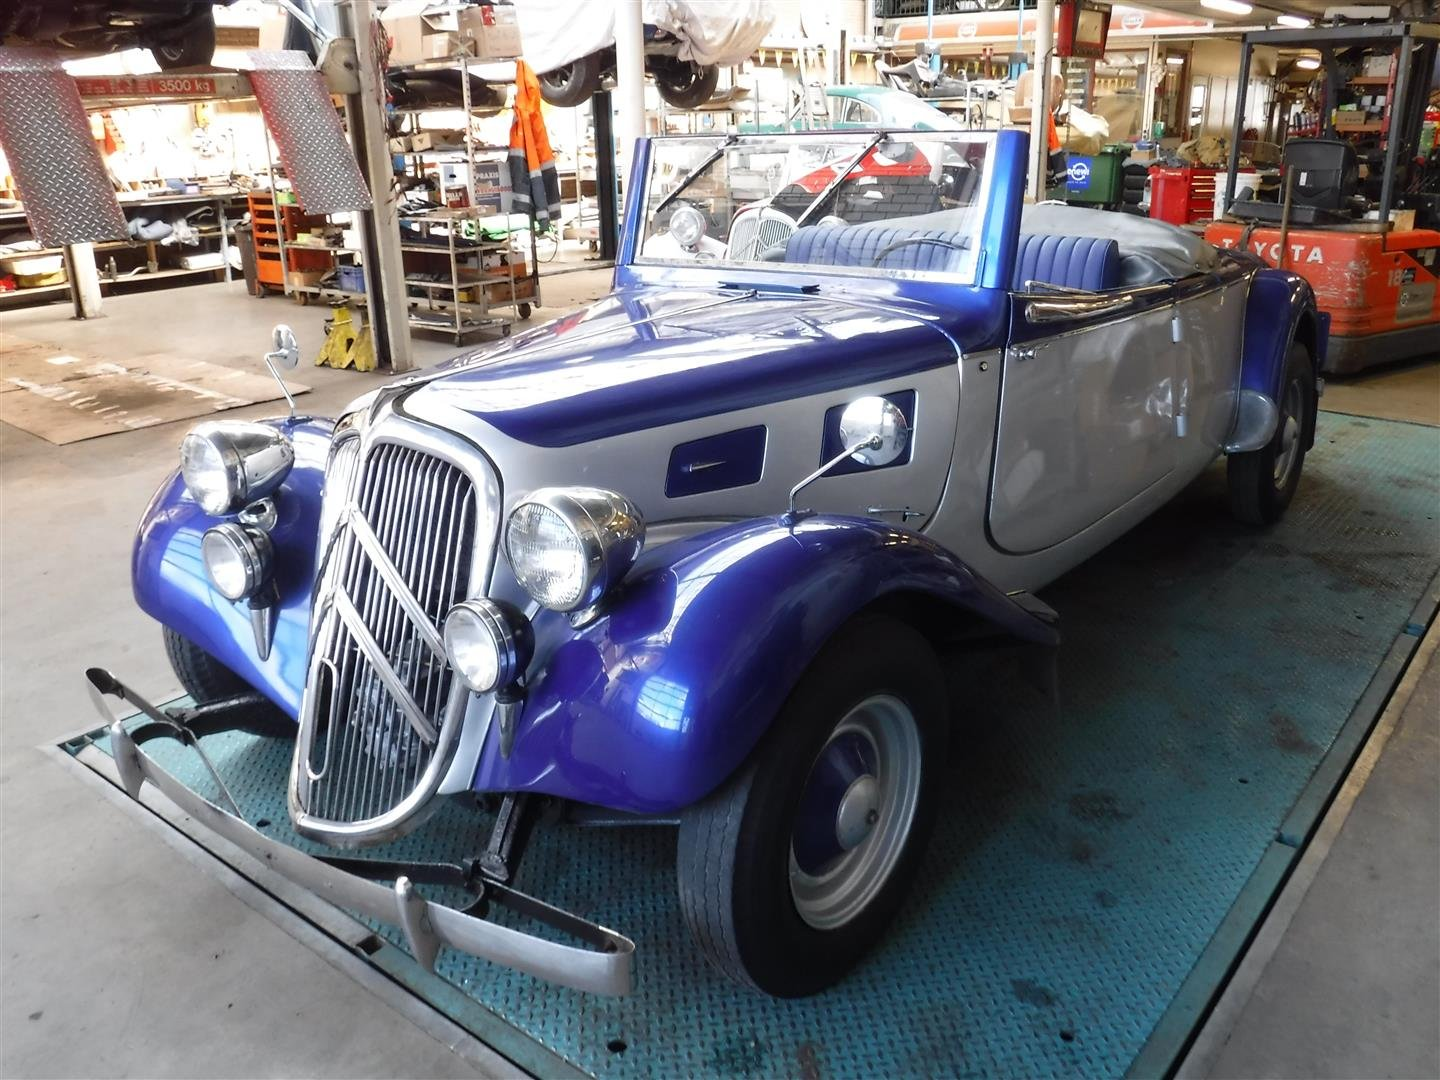 1938 Citroën 11B roadster '38 For Sale (picture 1 of 6)